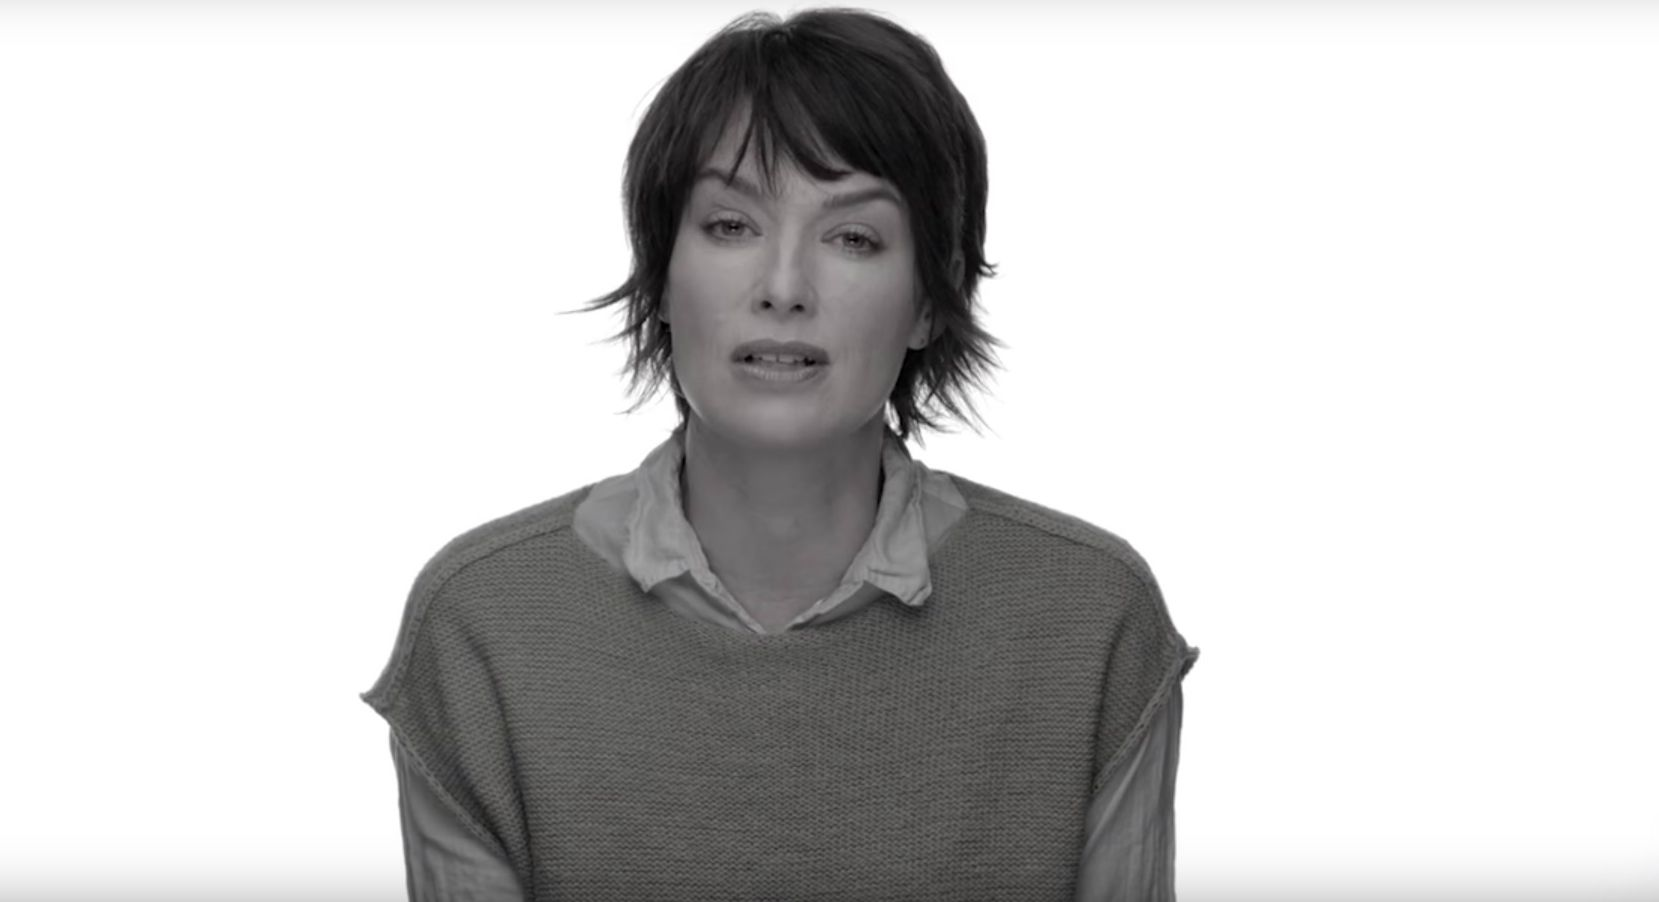 Lena Headey in Game of Thrones refugee campaign